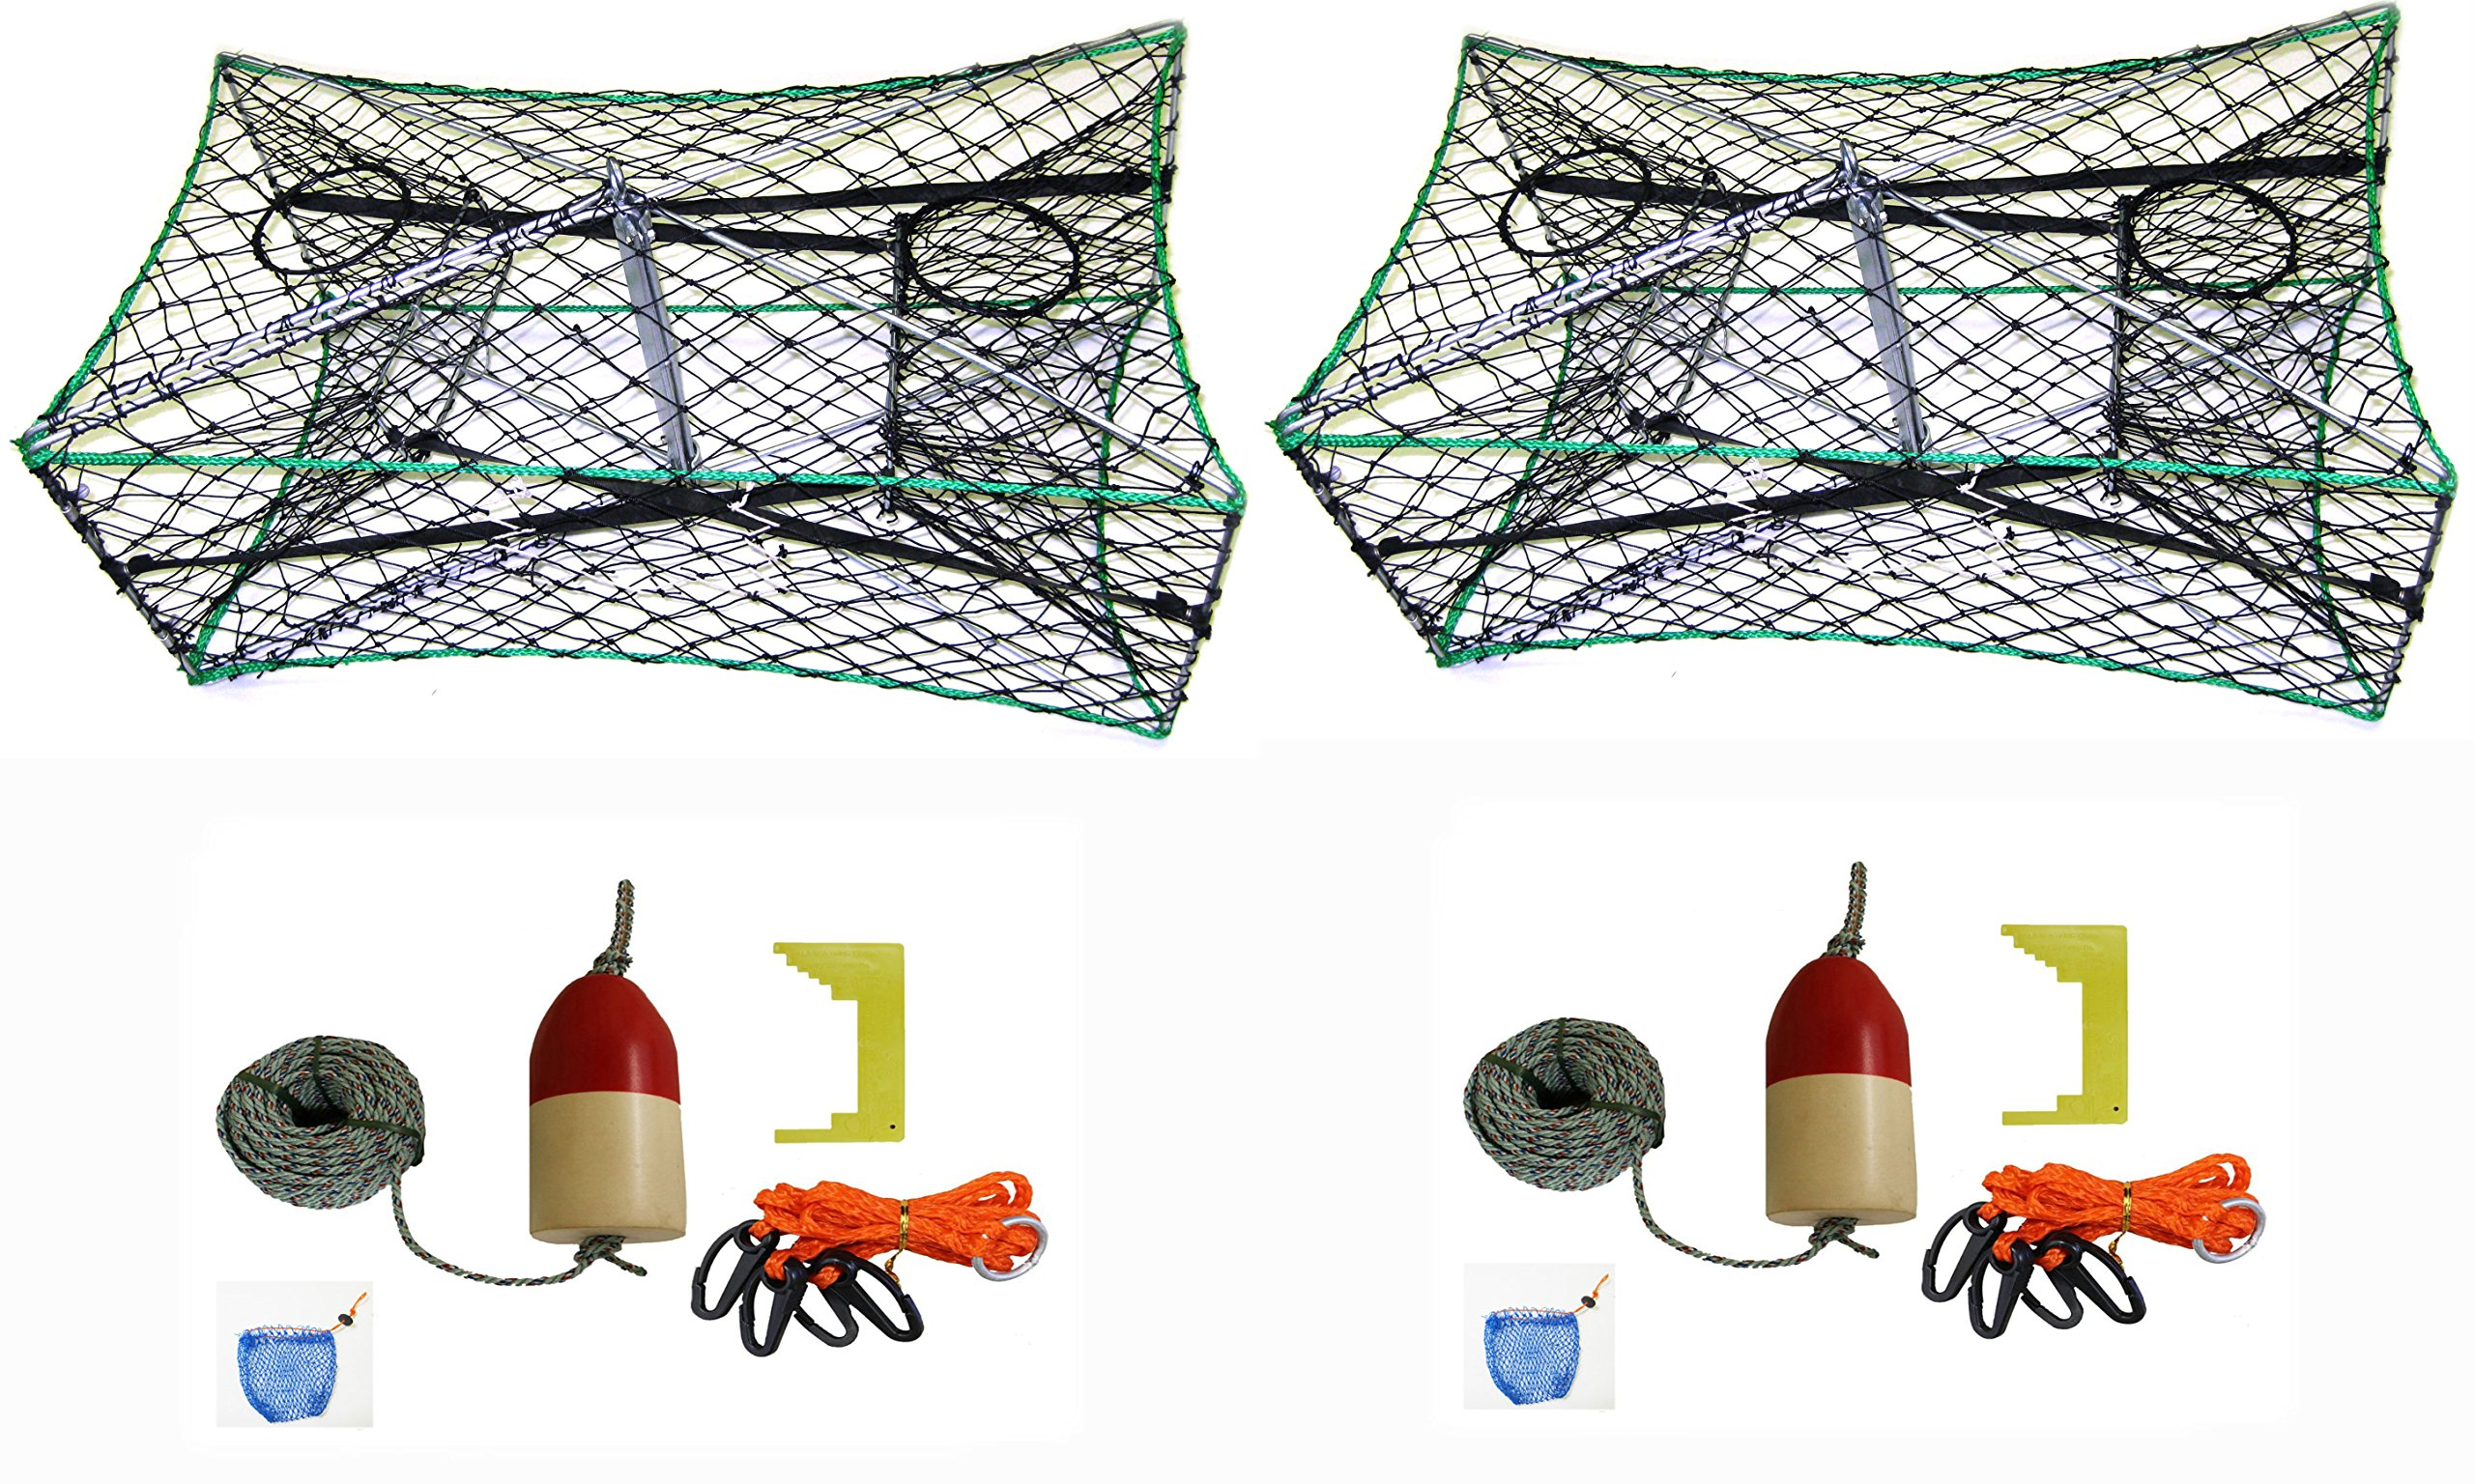 2-Pack of KUFA Galvanized Foldable Crab Tra & Accessory Kit (100' Lead CoreRope, Clipper,Harness,Bait Case & 11'' Red/White Float) (S33+CAQ1)x2